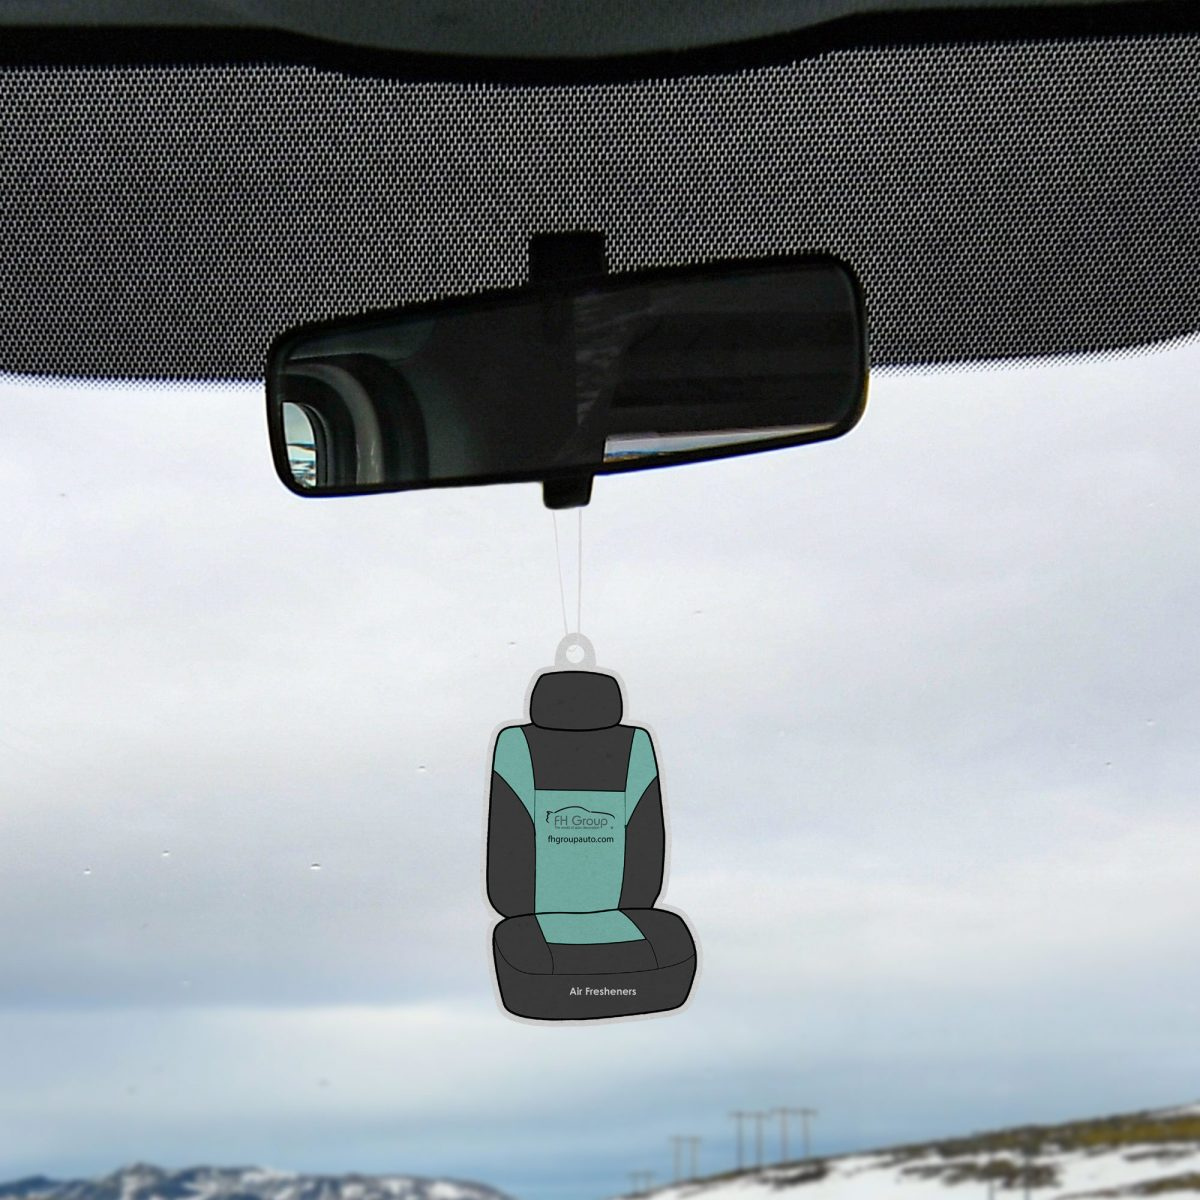 FH1007 Air Freshener for car